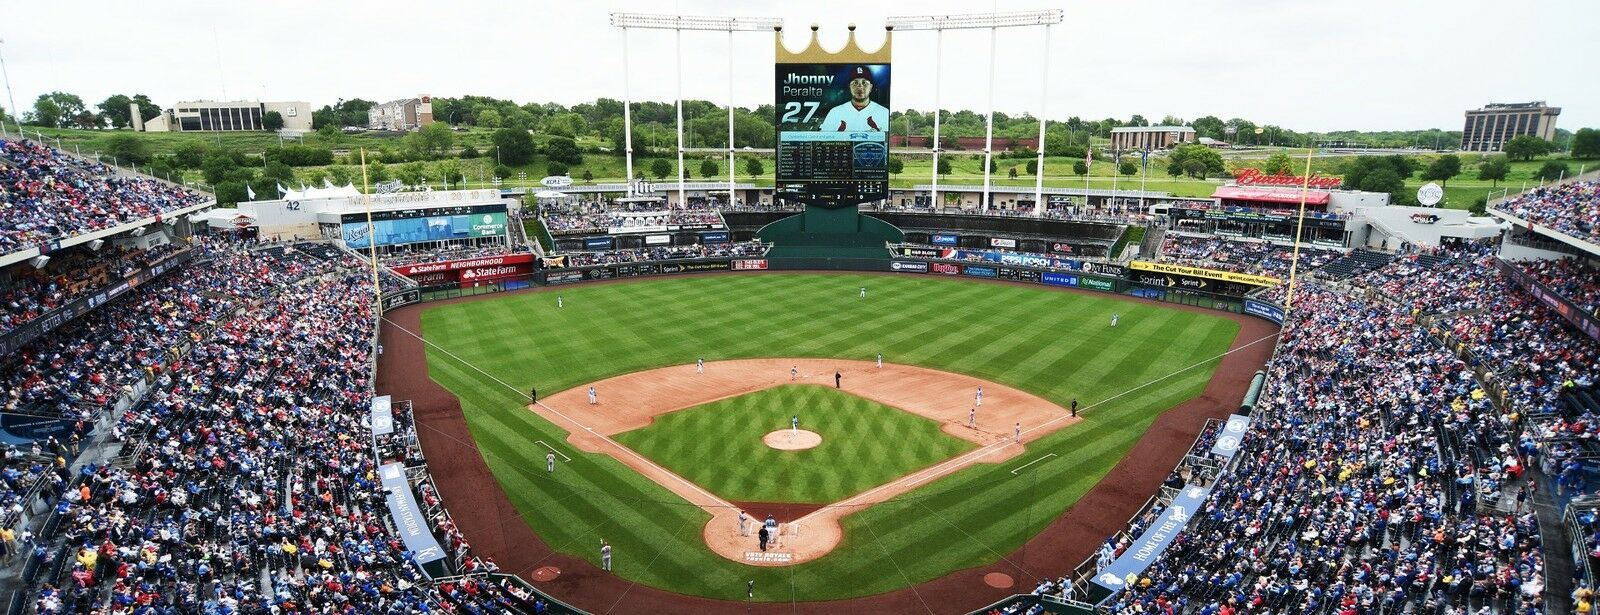 Chicago White Sox at Kansas City Royals